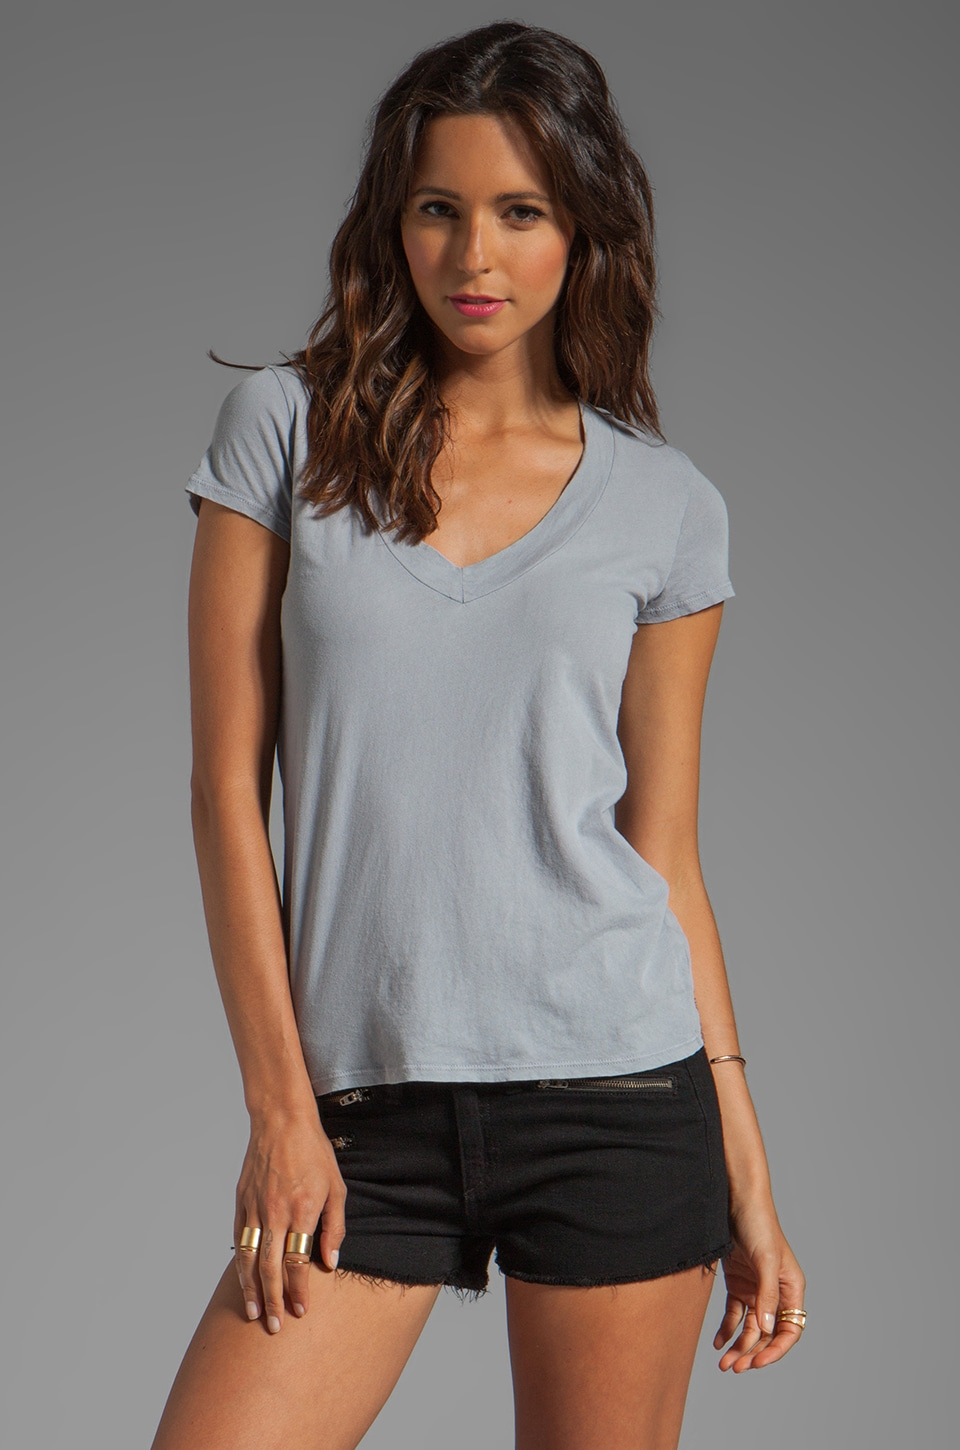 James Perse Relaxed Casual Tee in Ore